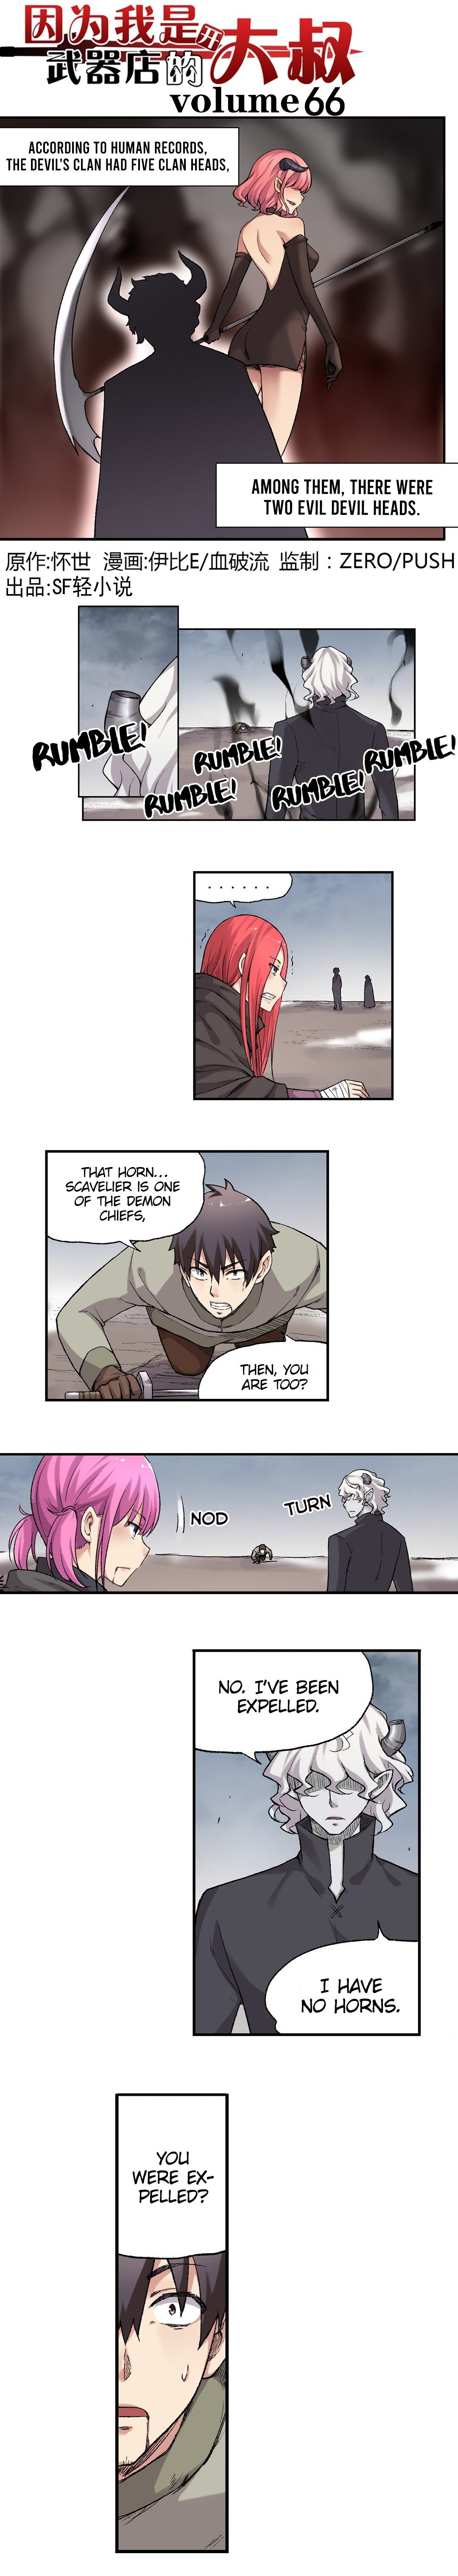 Manga Because I'm An Uncle who Runs A Weapon Shop - Chapter 66 Page 2